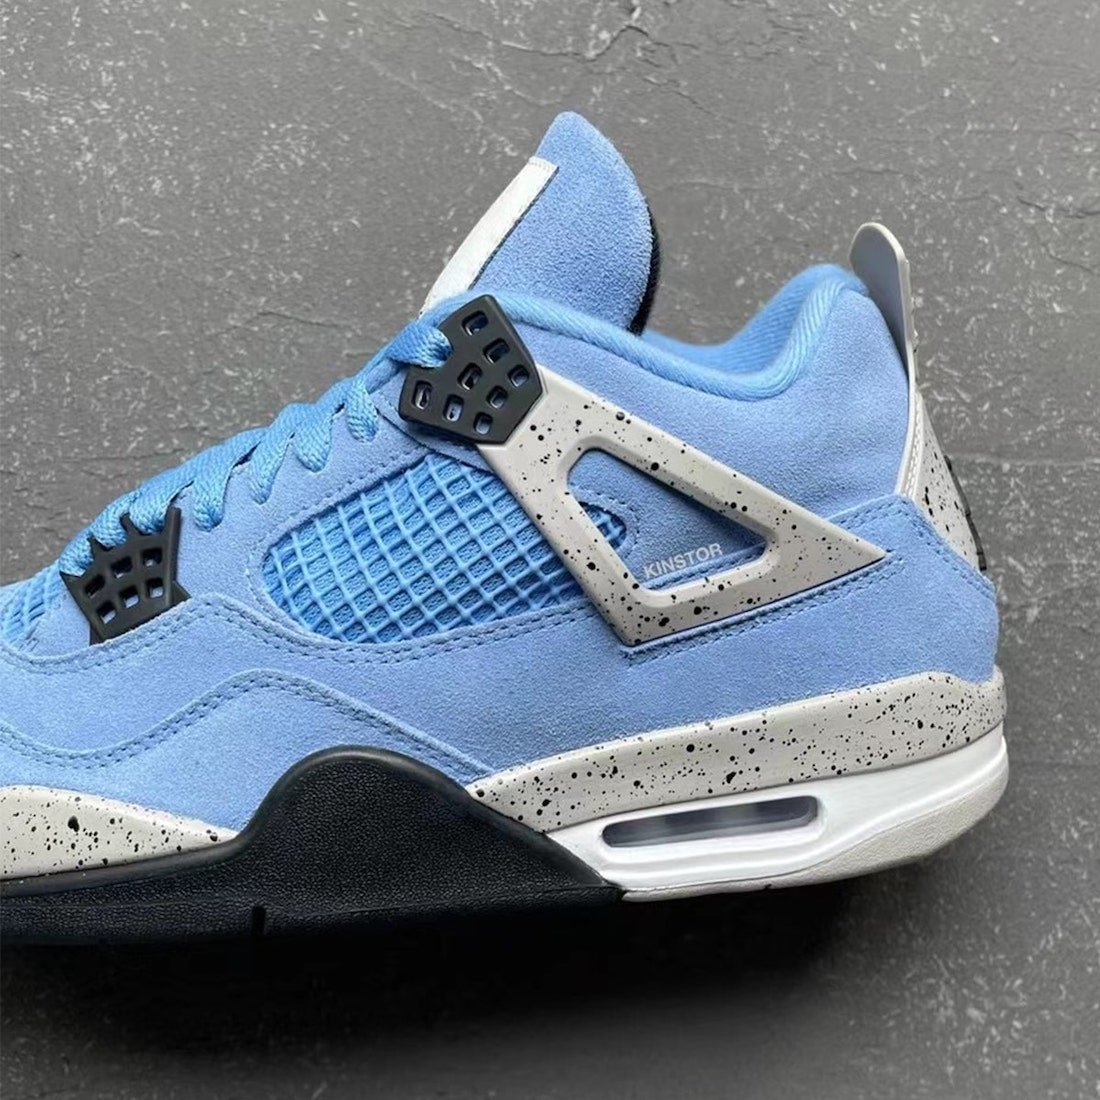 Air Jordan 4 University Blue Release Date CT8527-400